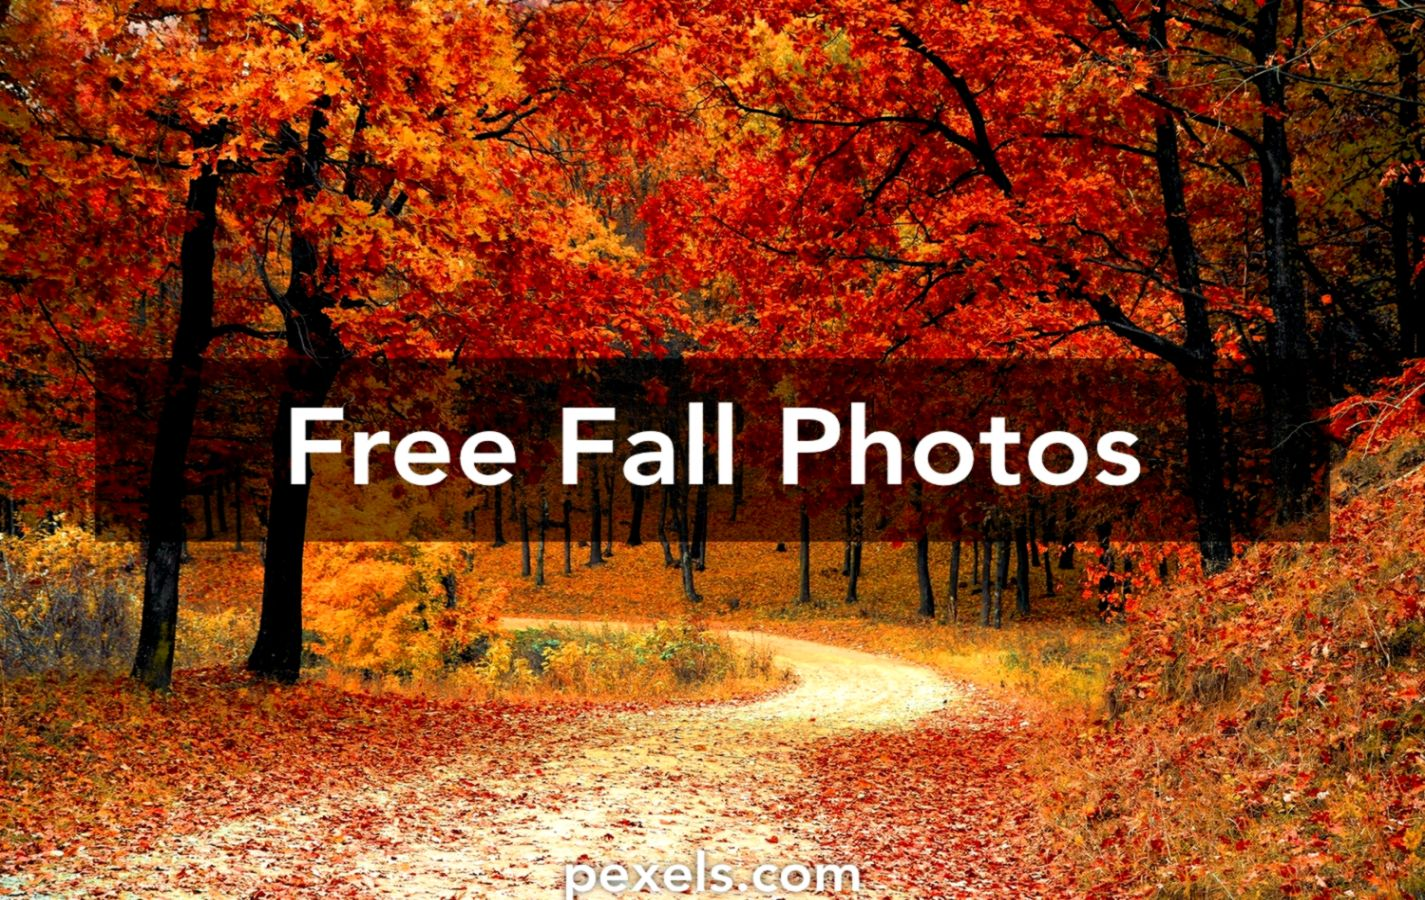 Free Desktop Wallpaper Fall Scenes Wallpapers Sheet